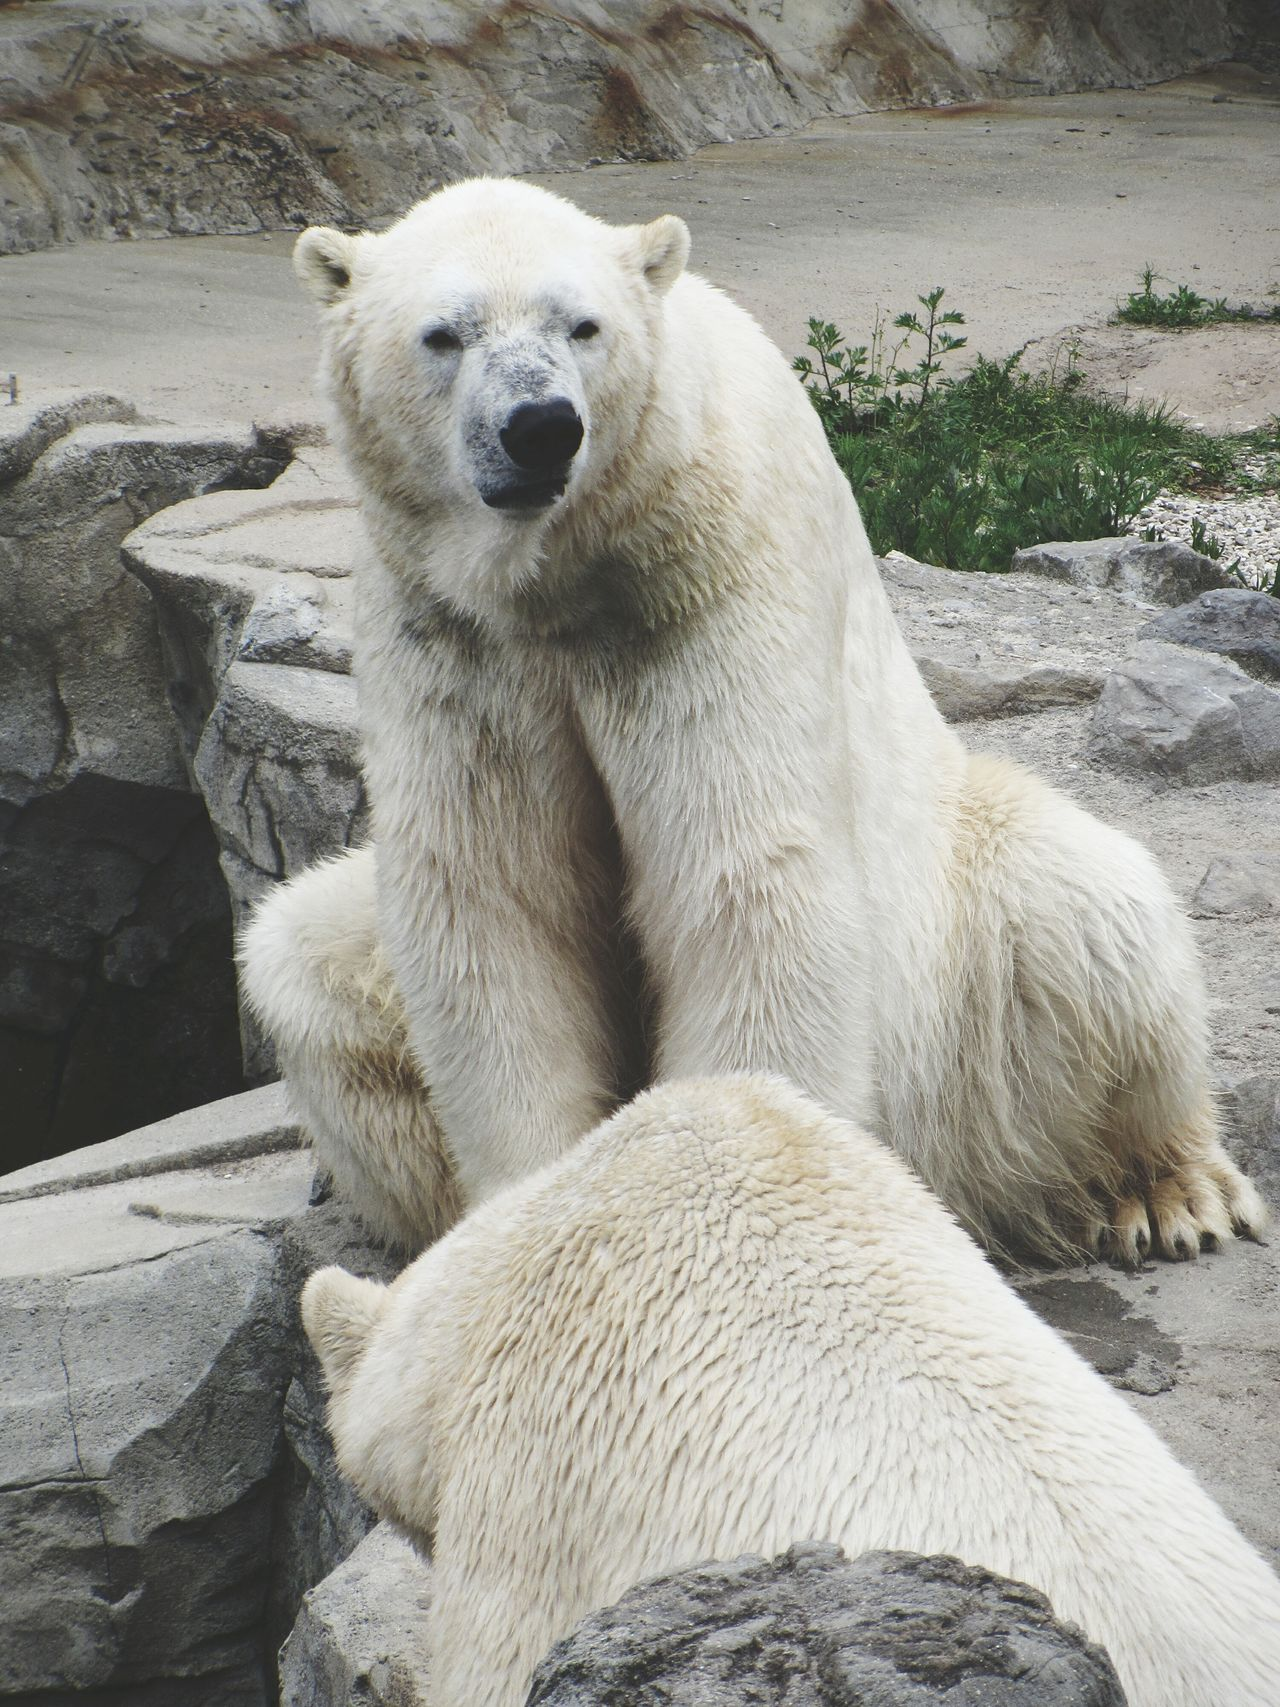 Polar Bear Polar Bears Zoo Taking Photos Zoo Animals  Wild Animal Nature Animal Animals